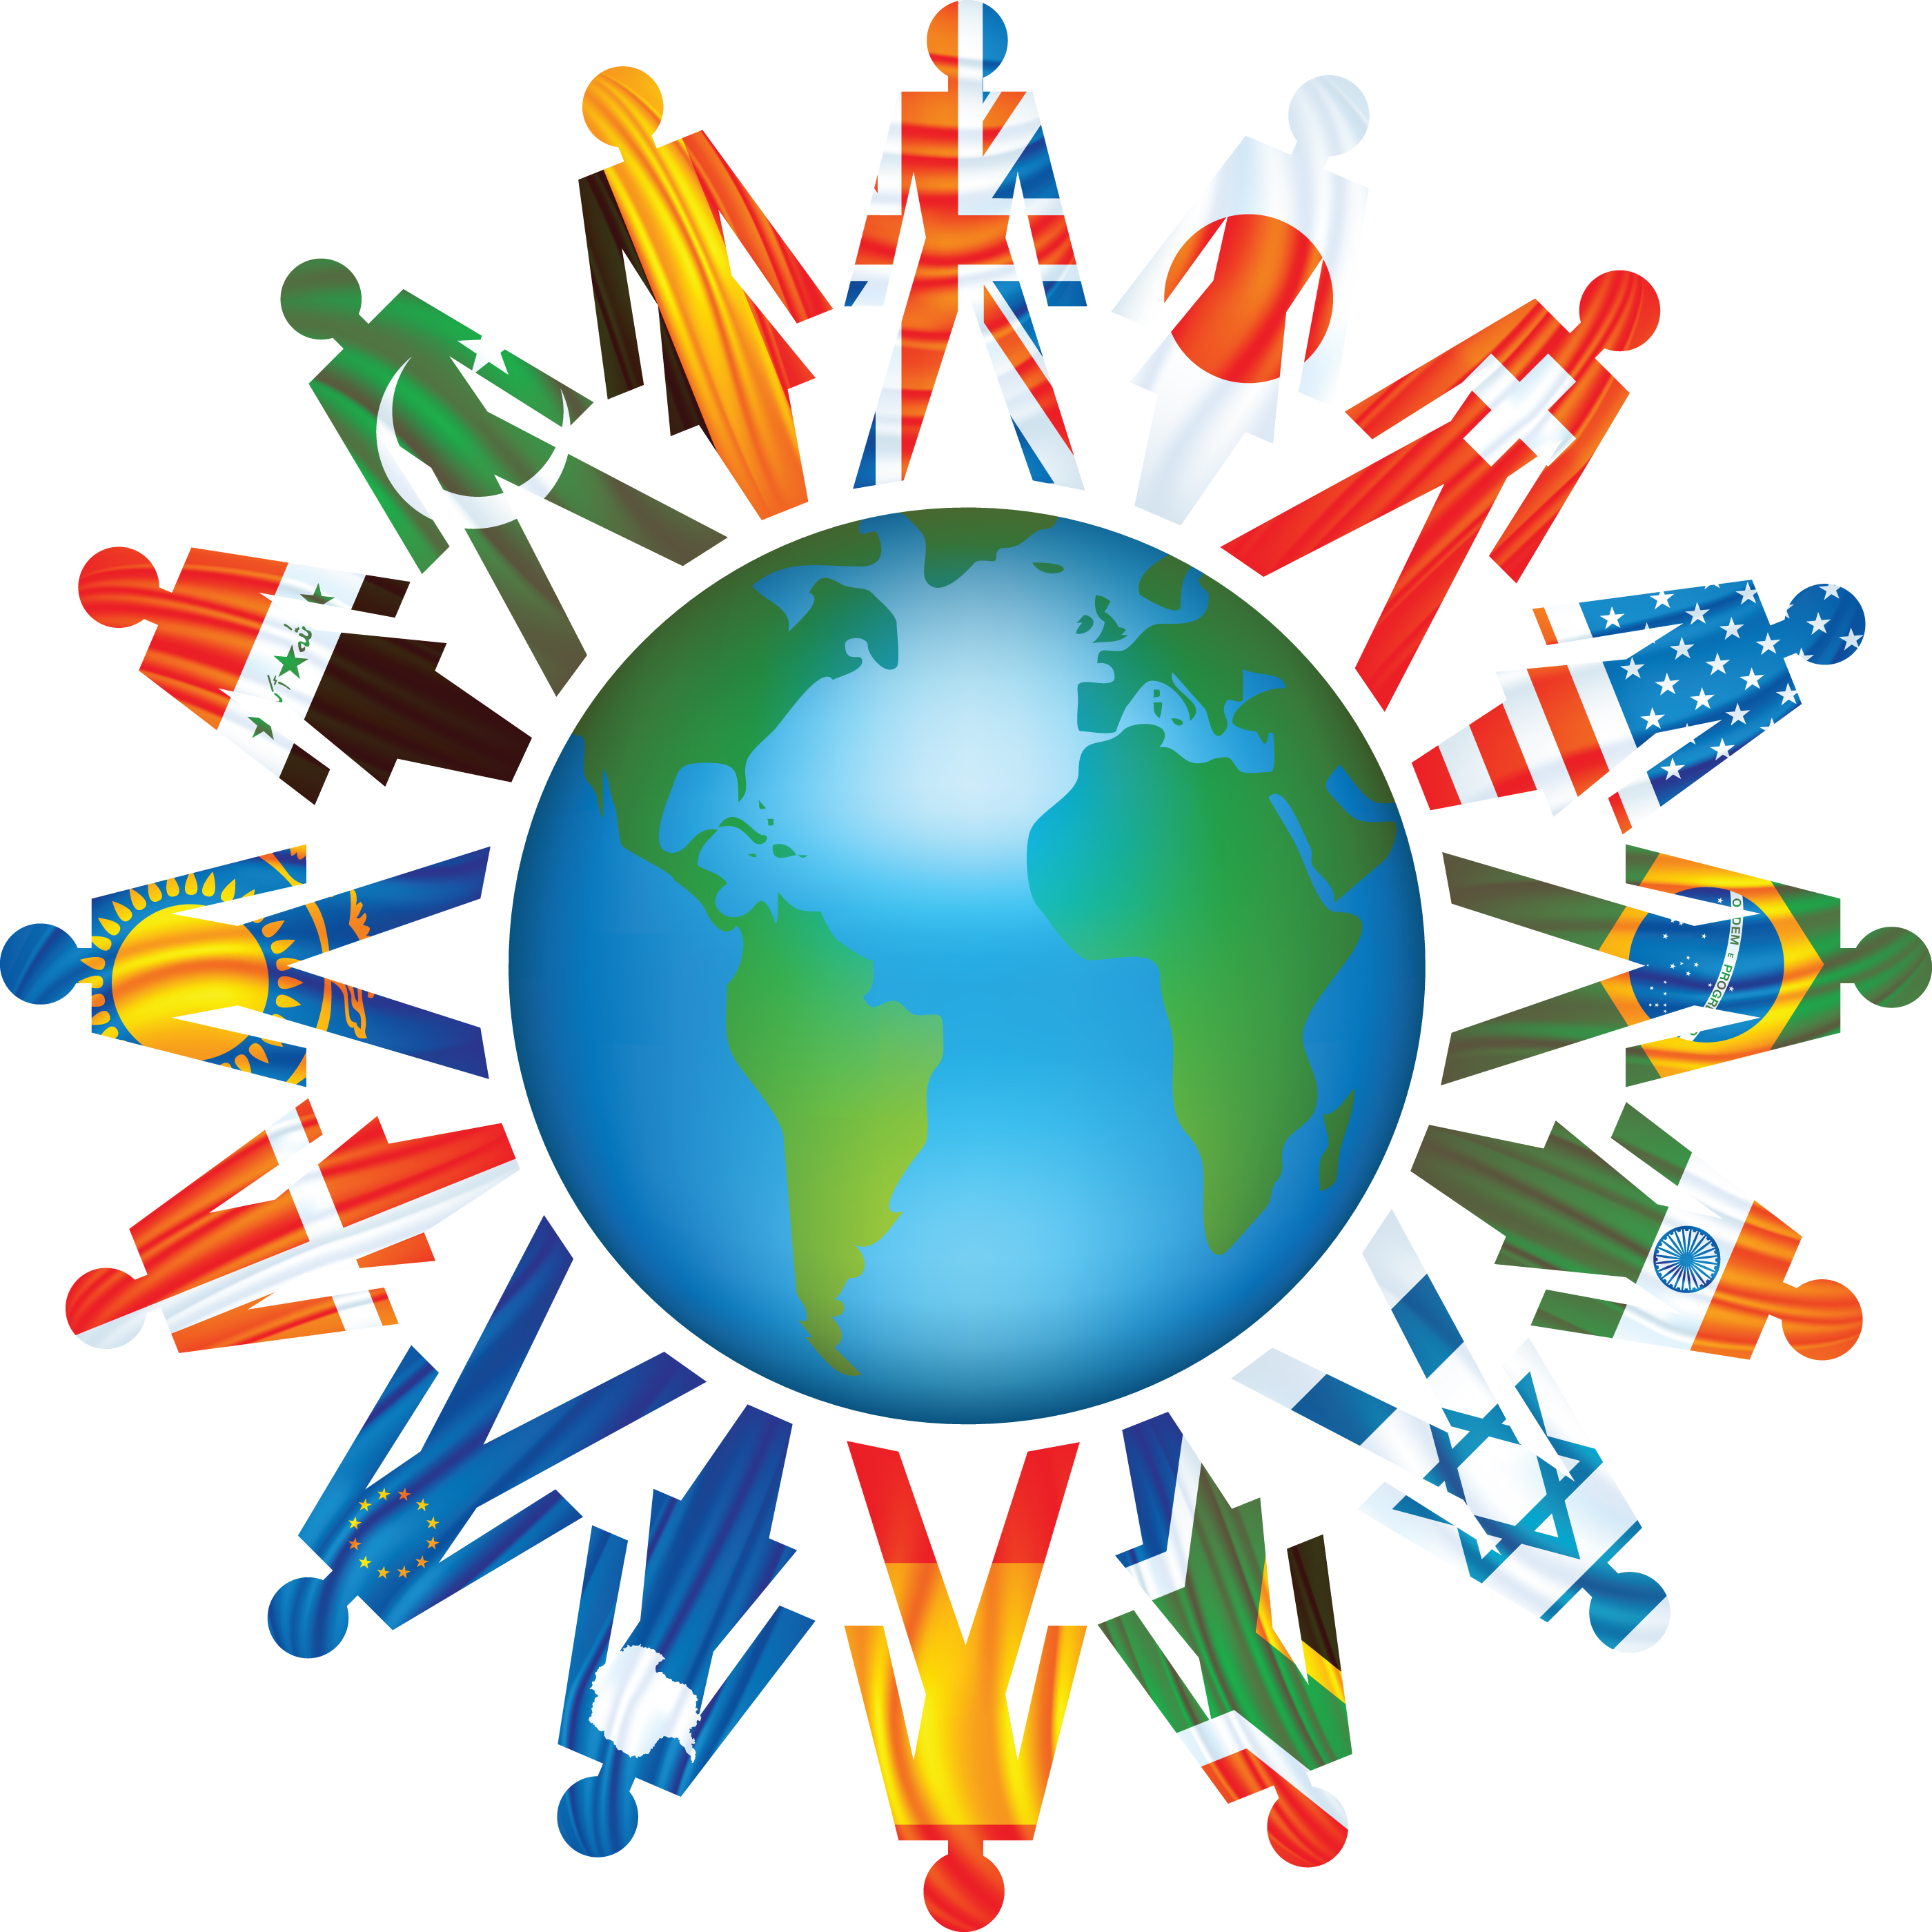 Coture clipart cultural awareness Spenders in mundo the luxury